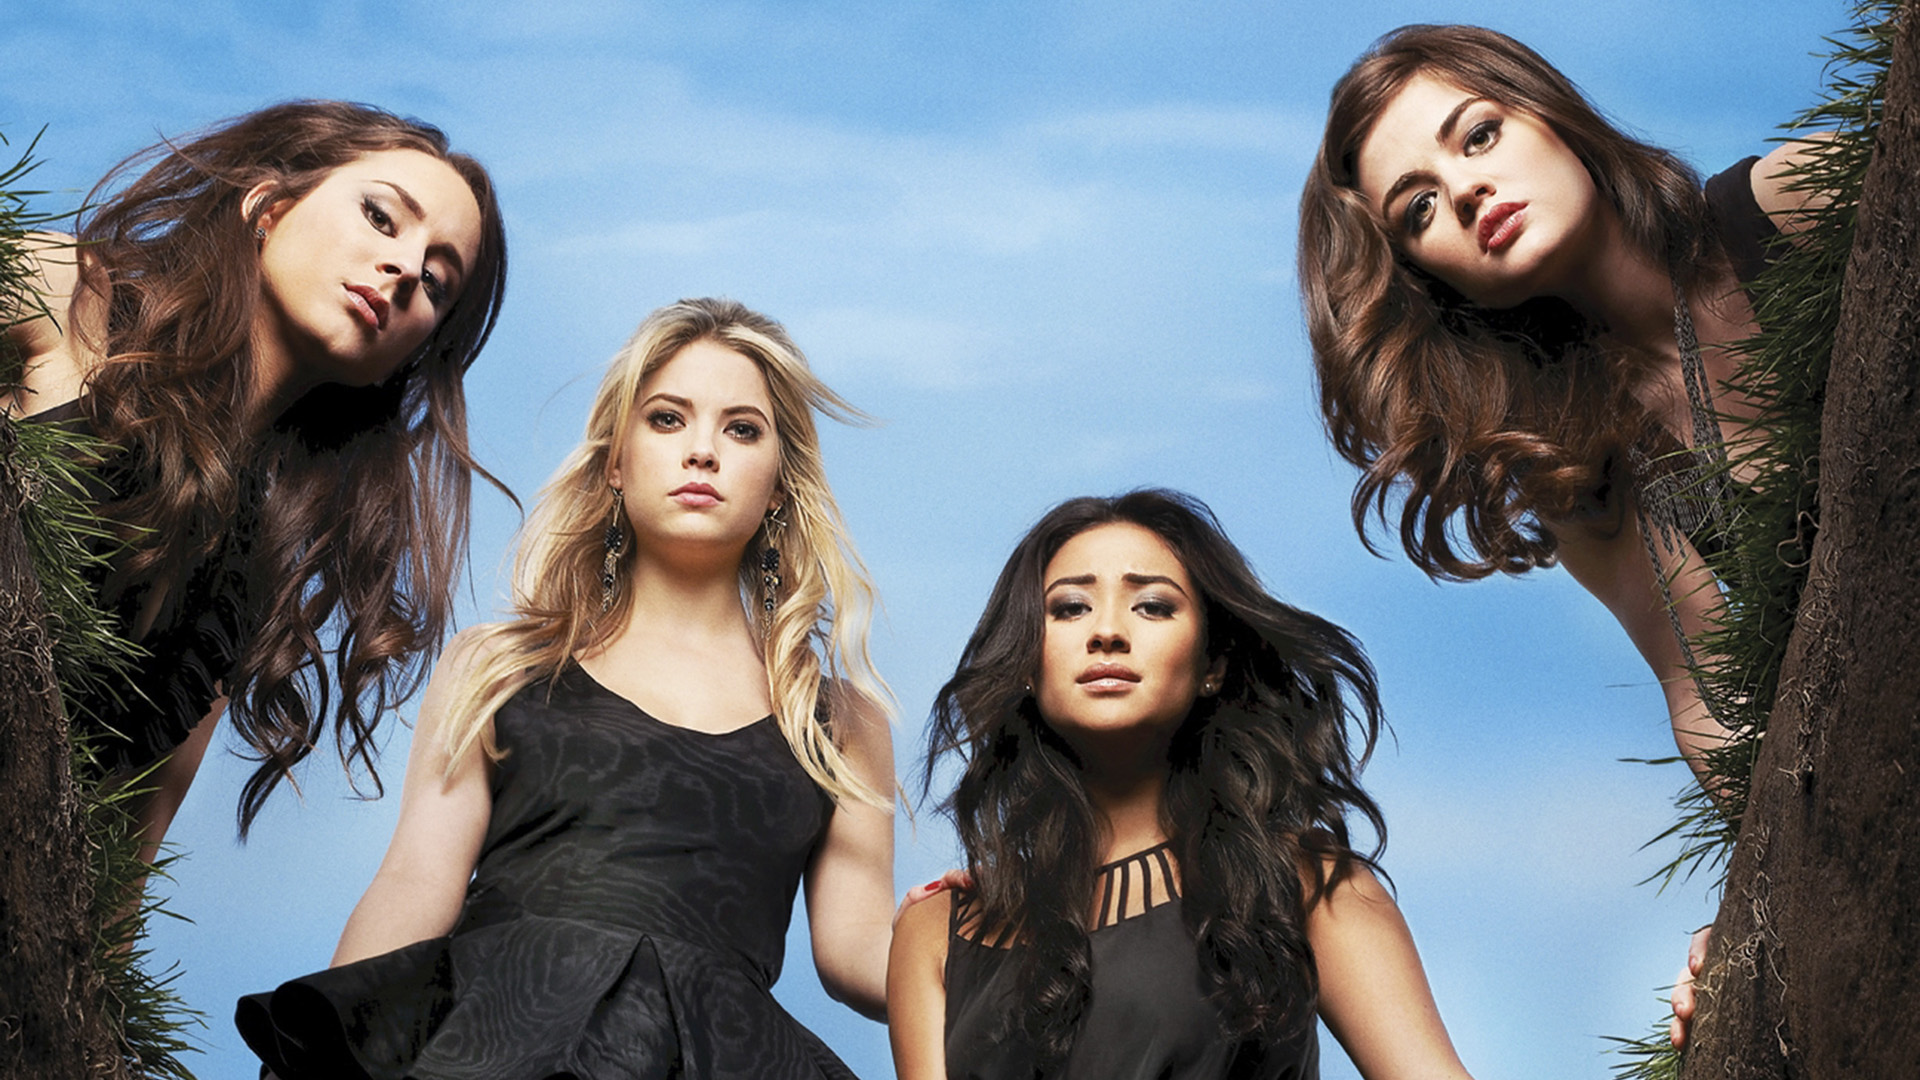 Serie: Pretty Little Liars